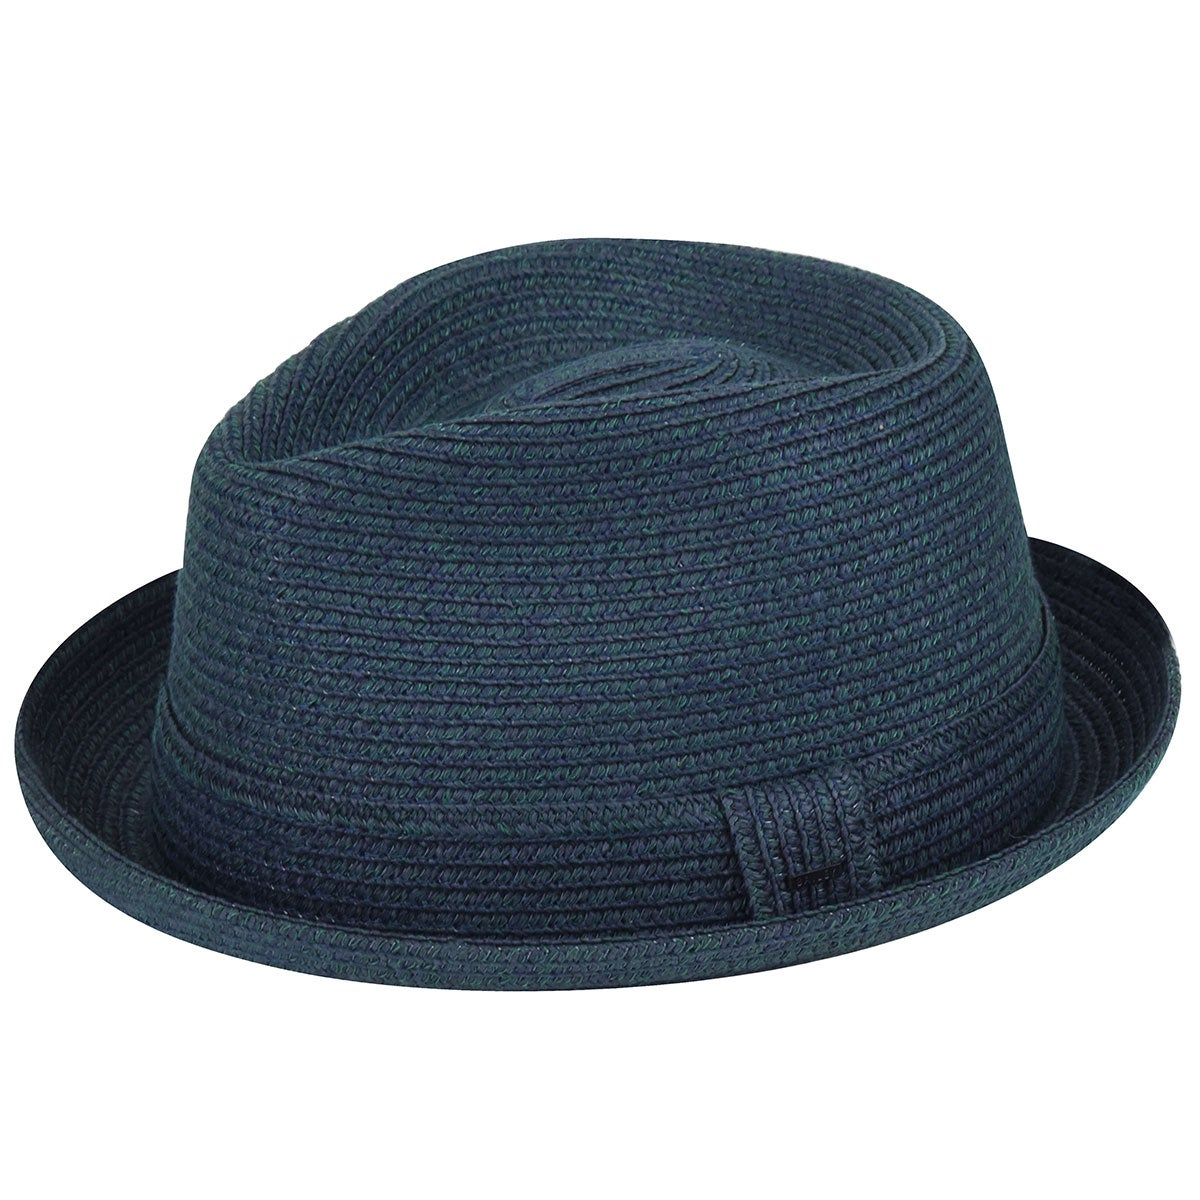 8 Classic Vintage Halloween Costumes Billy Braided Trilby $64.00 AT vintagedancer.com